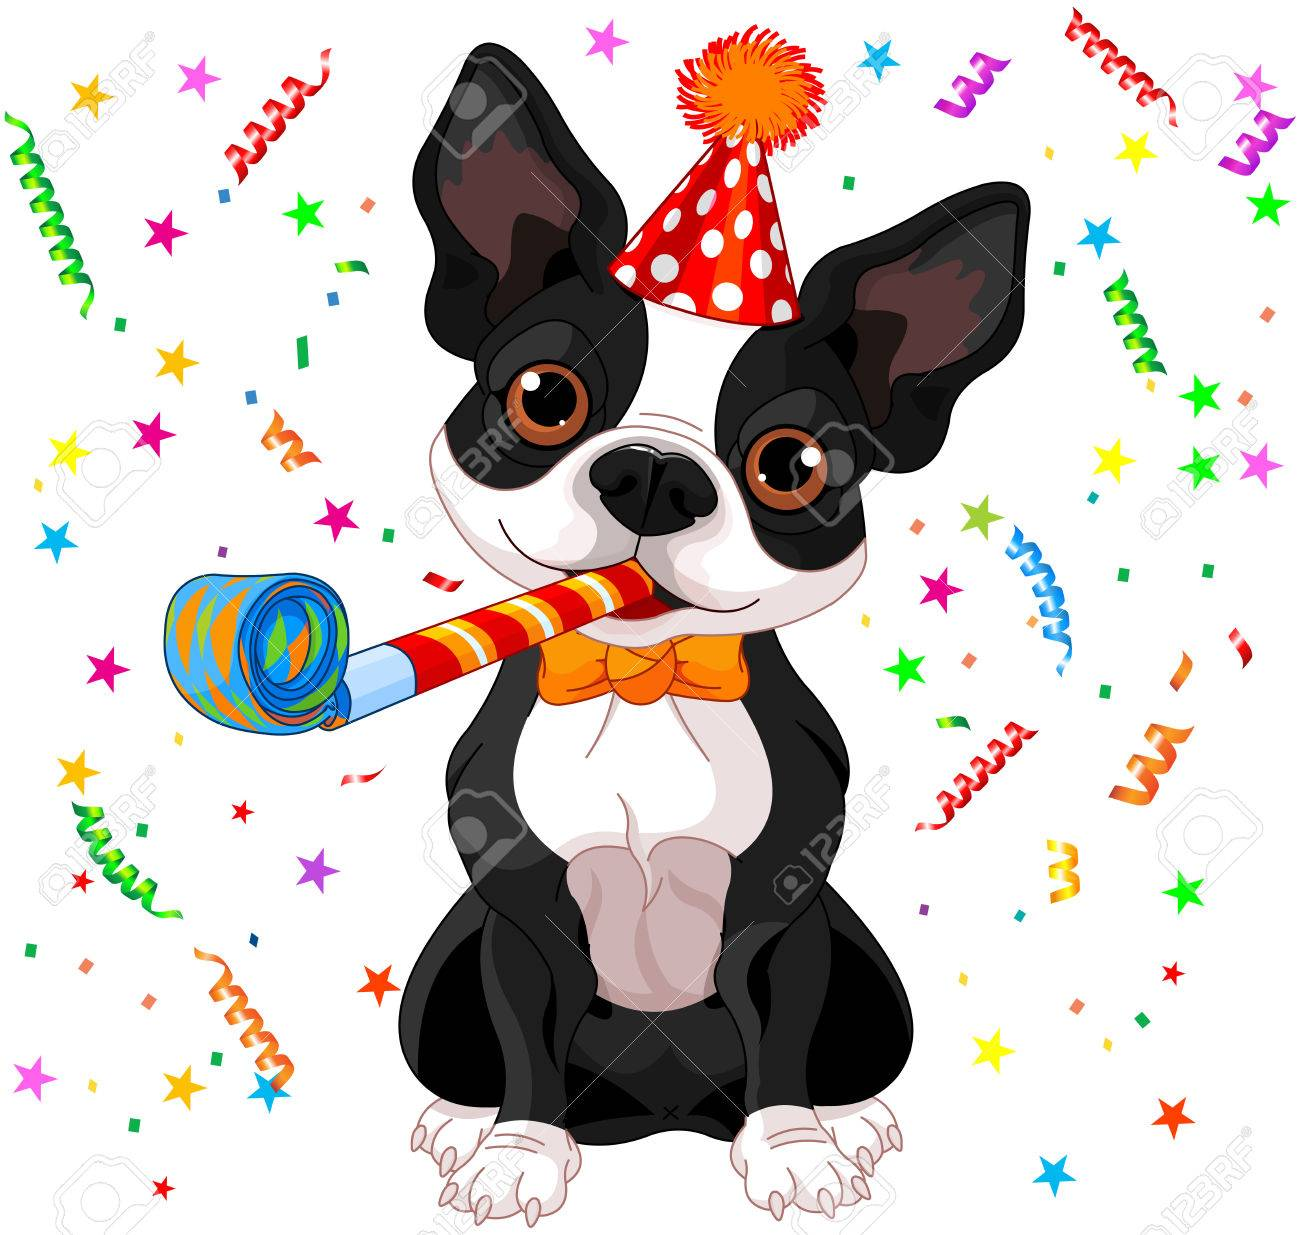 Le parc/enclos à chiot 35588778-illustration-of-cute-boston-terrier-celebrating